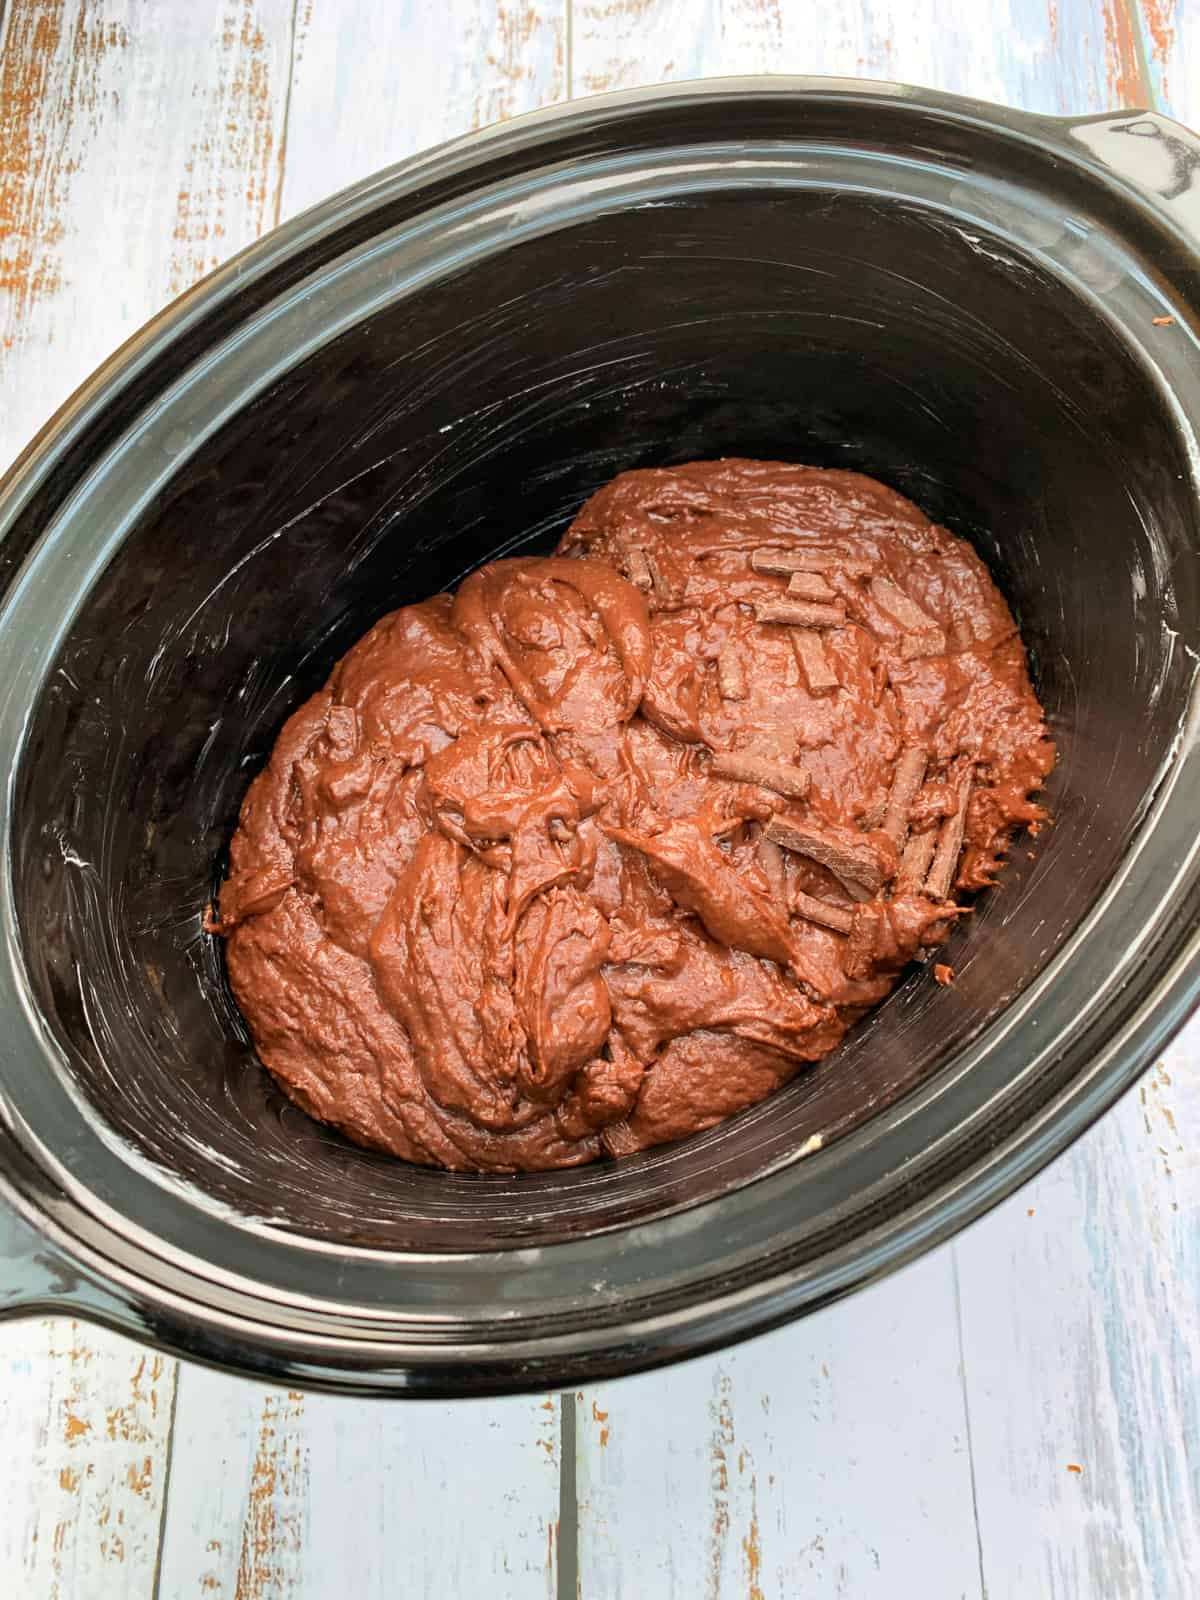 Slow cooker pot with chocolate cake mixture in it.